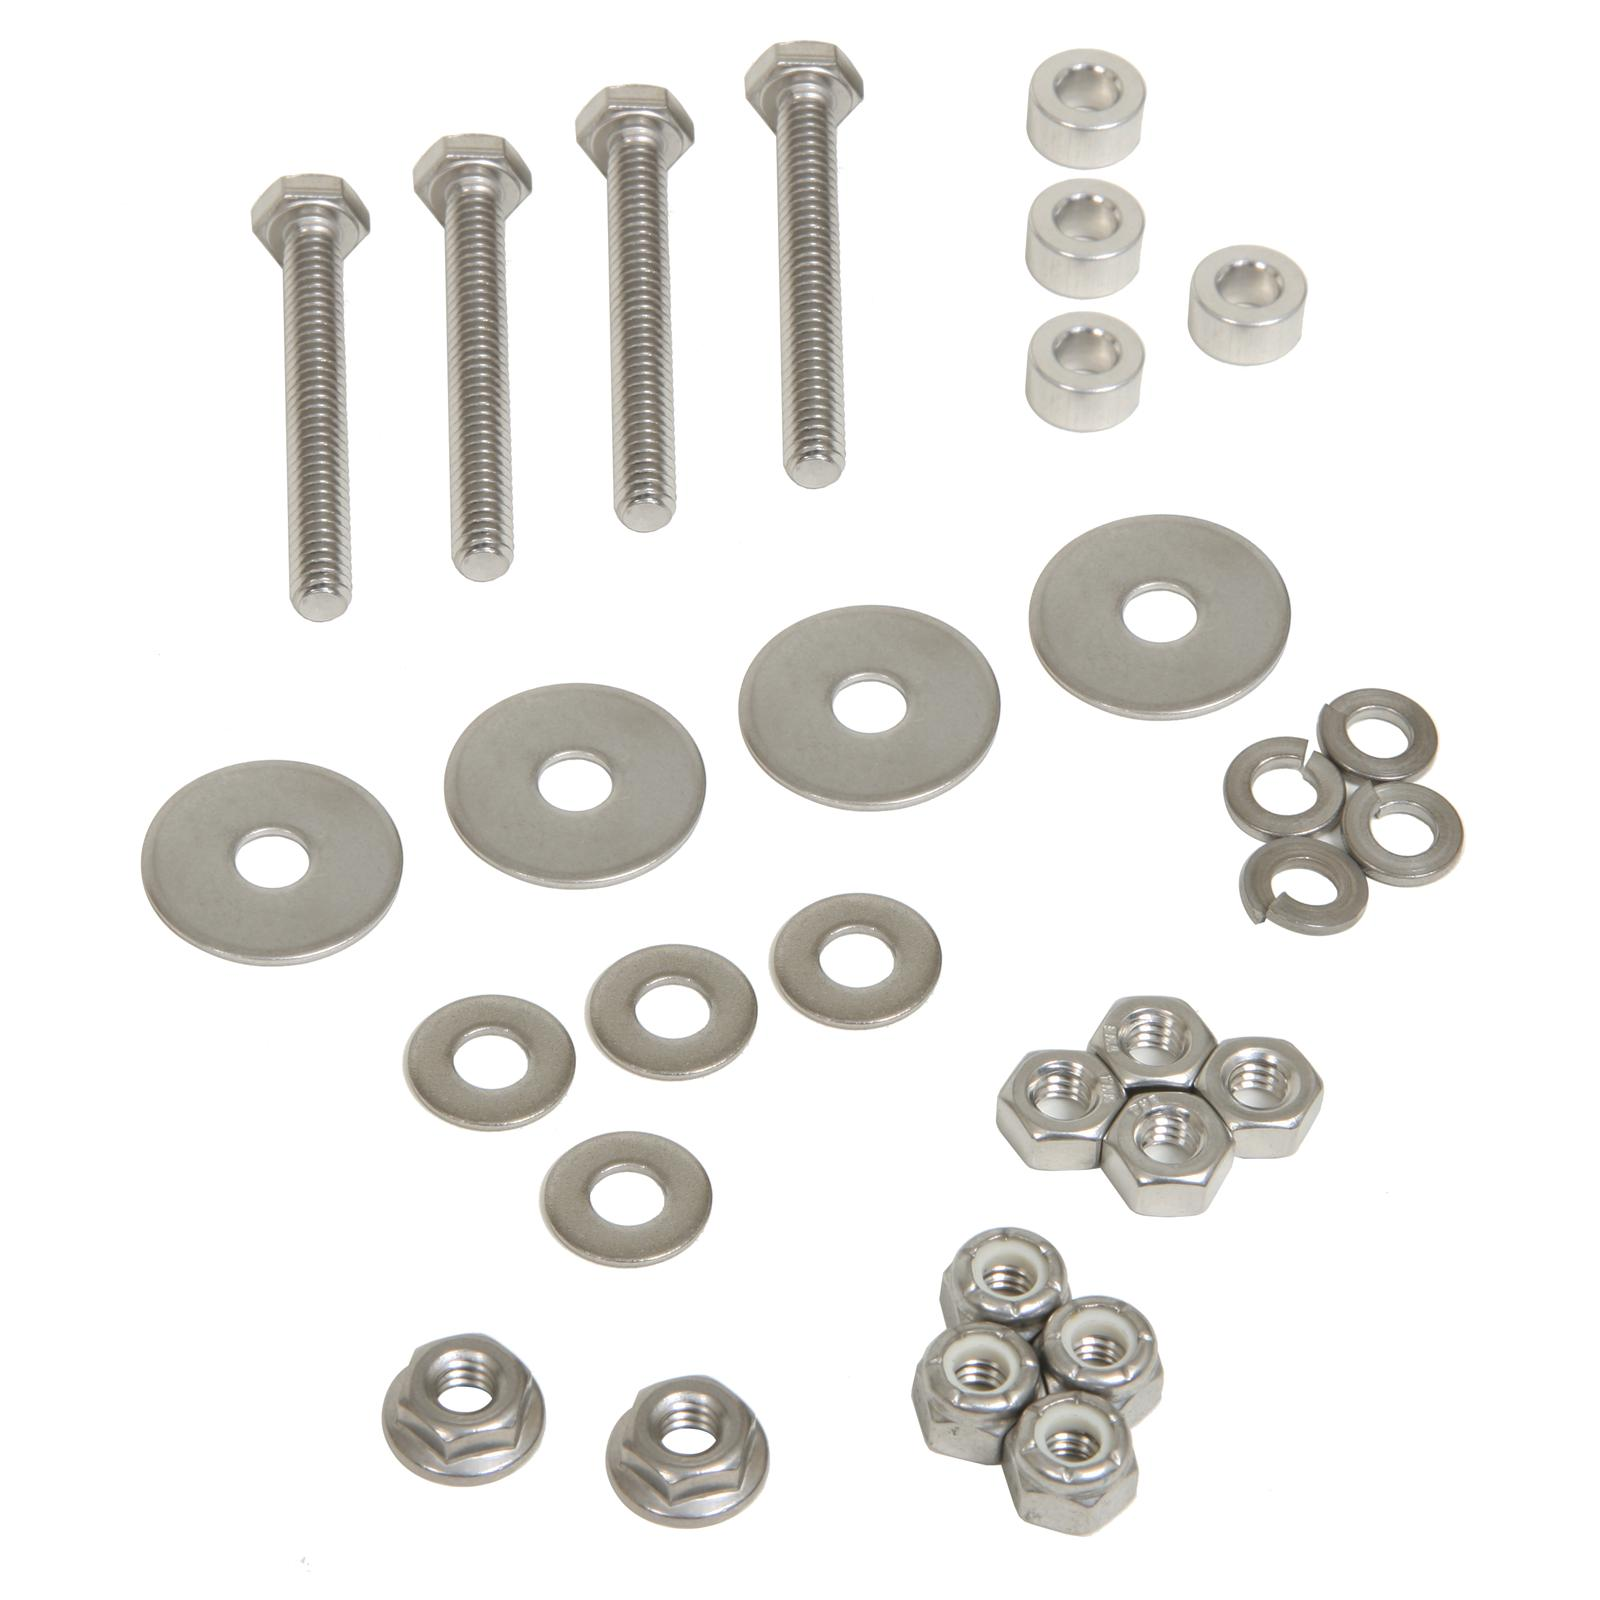 hardware replacement Wrhardware has new as well as hard-to-find window hardware and window parts since 1976 we have carried a full-line of window hardware.